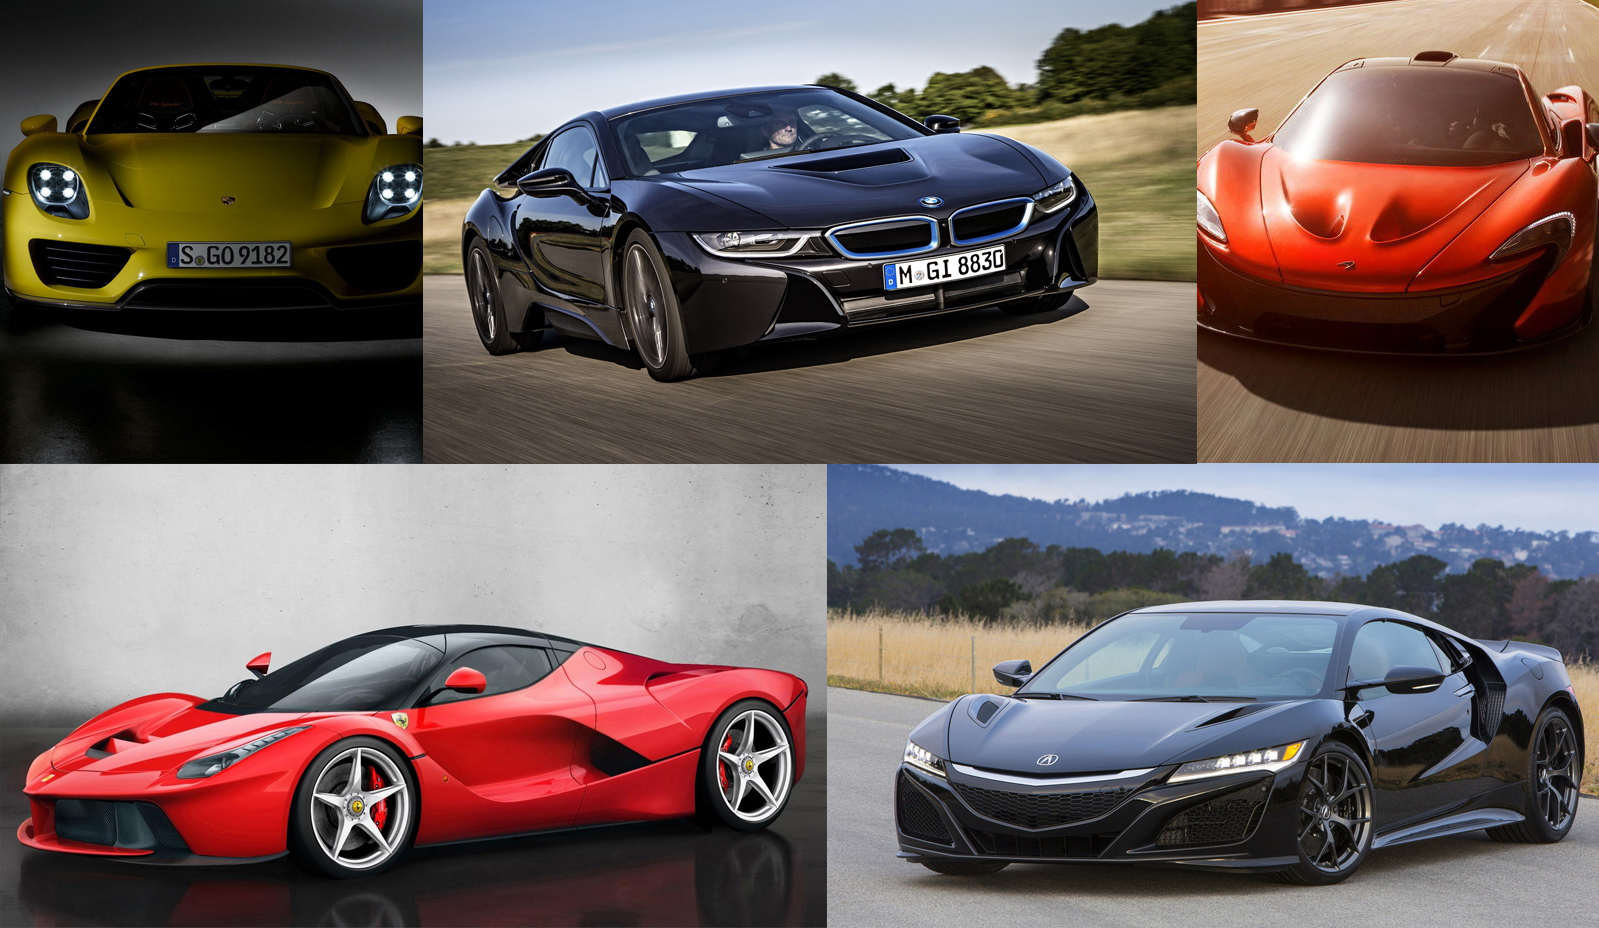 TopSpeeds Top Hybrid Sports Cars Guide Top Speed - Top 5 sports cars